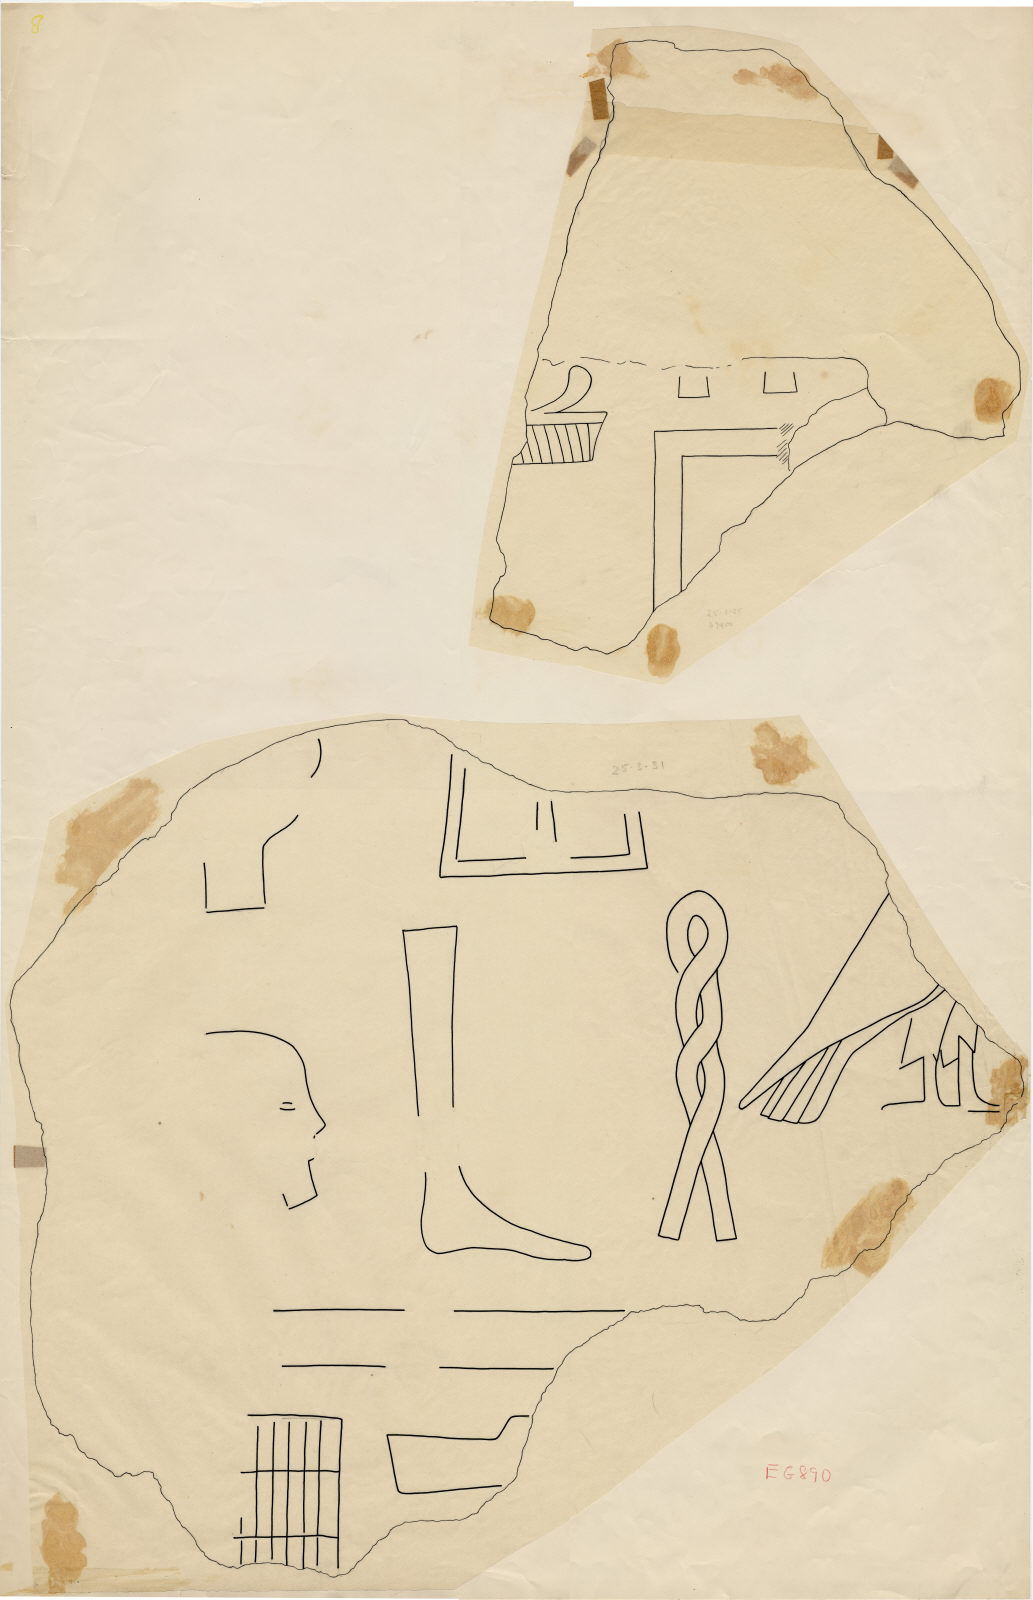 Drawings: fragments of relief from Street G 7400 and G 7410-7420